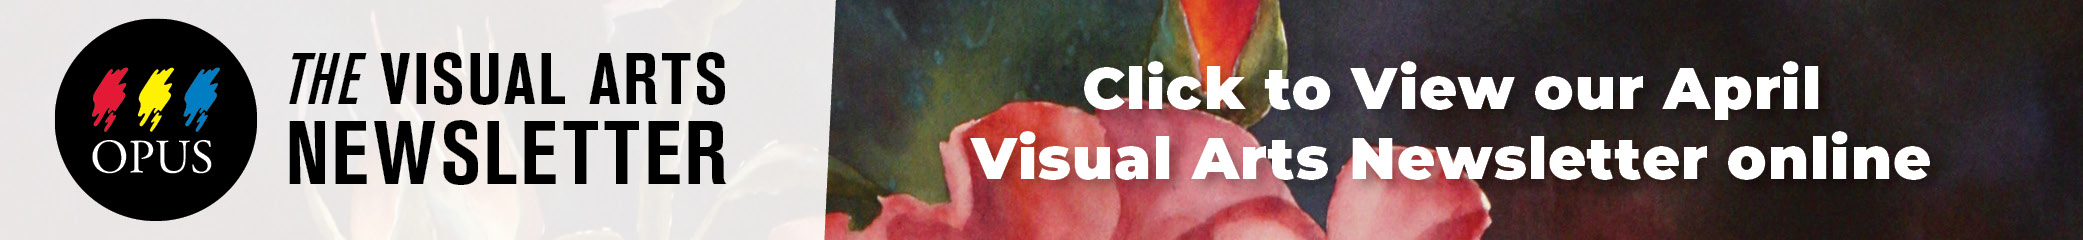 Click to see our Visual Arts Newsletter online